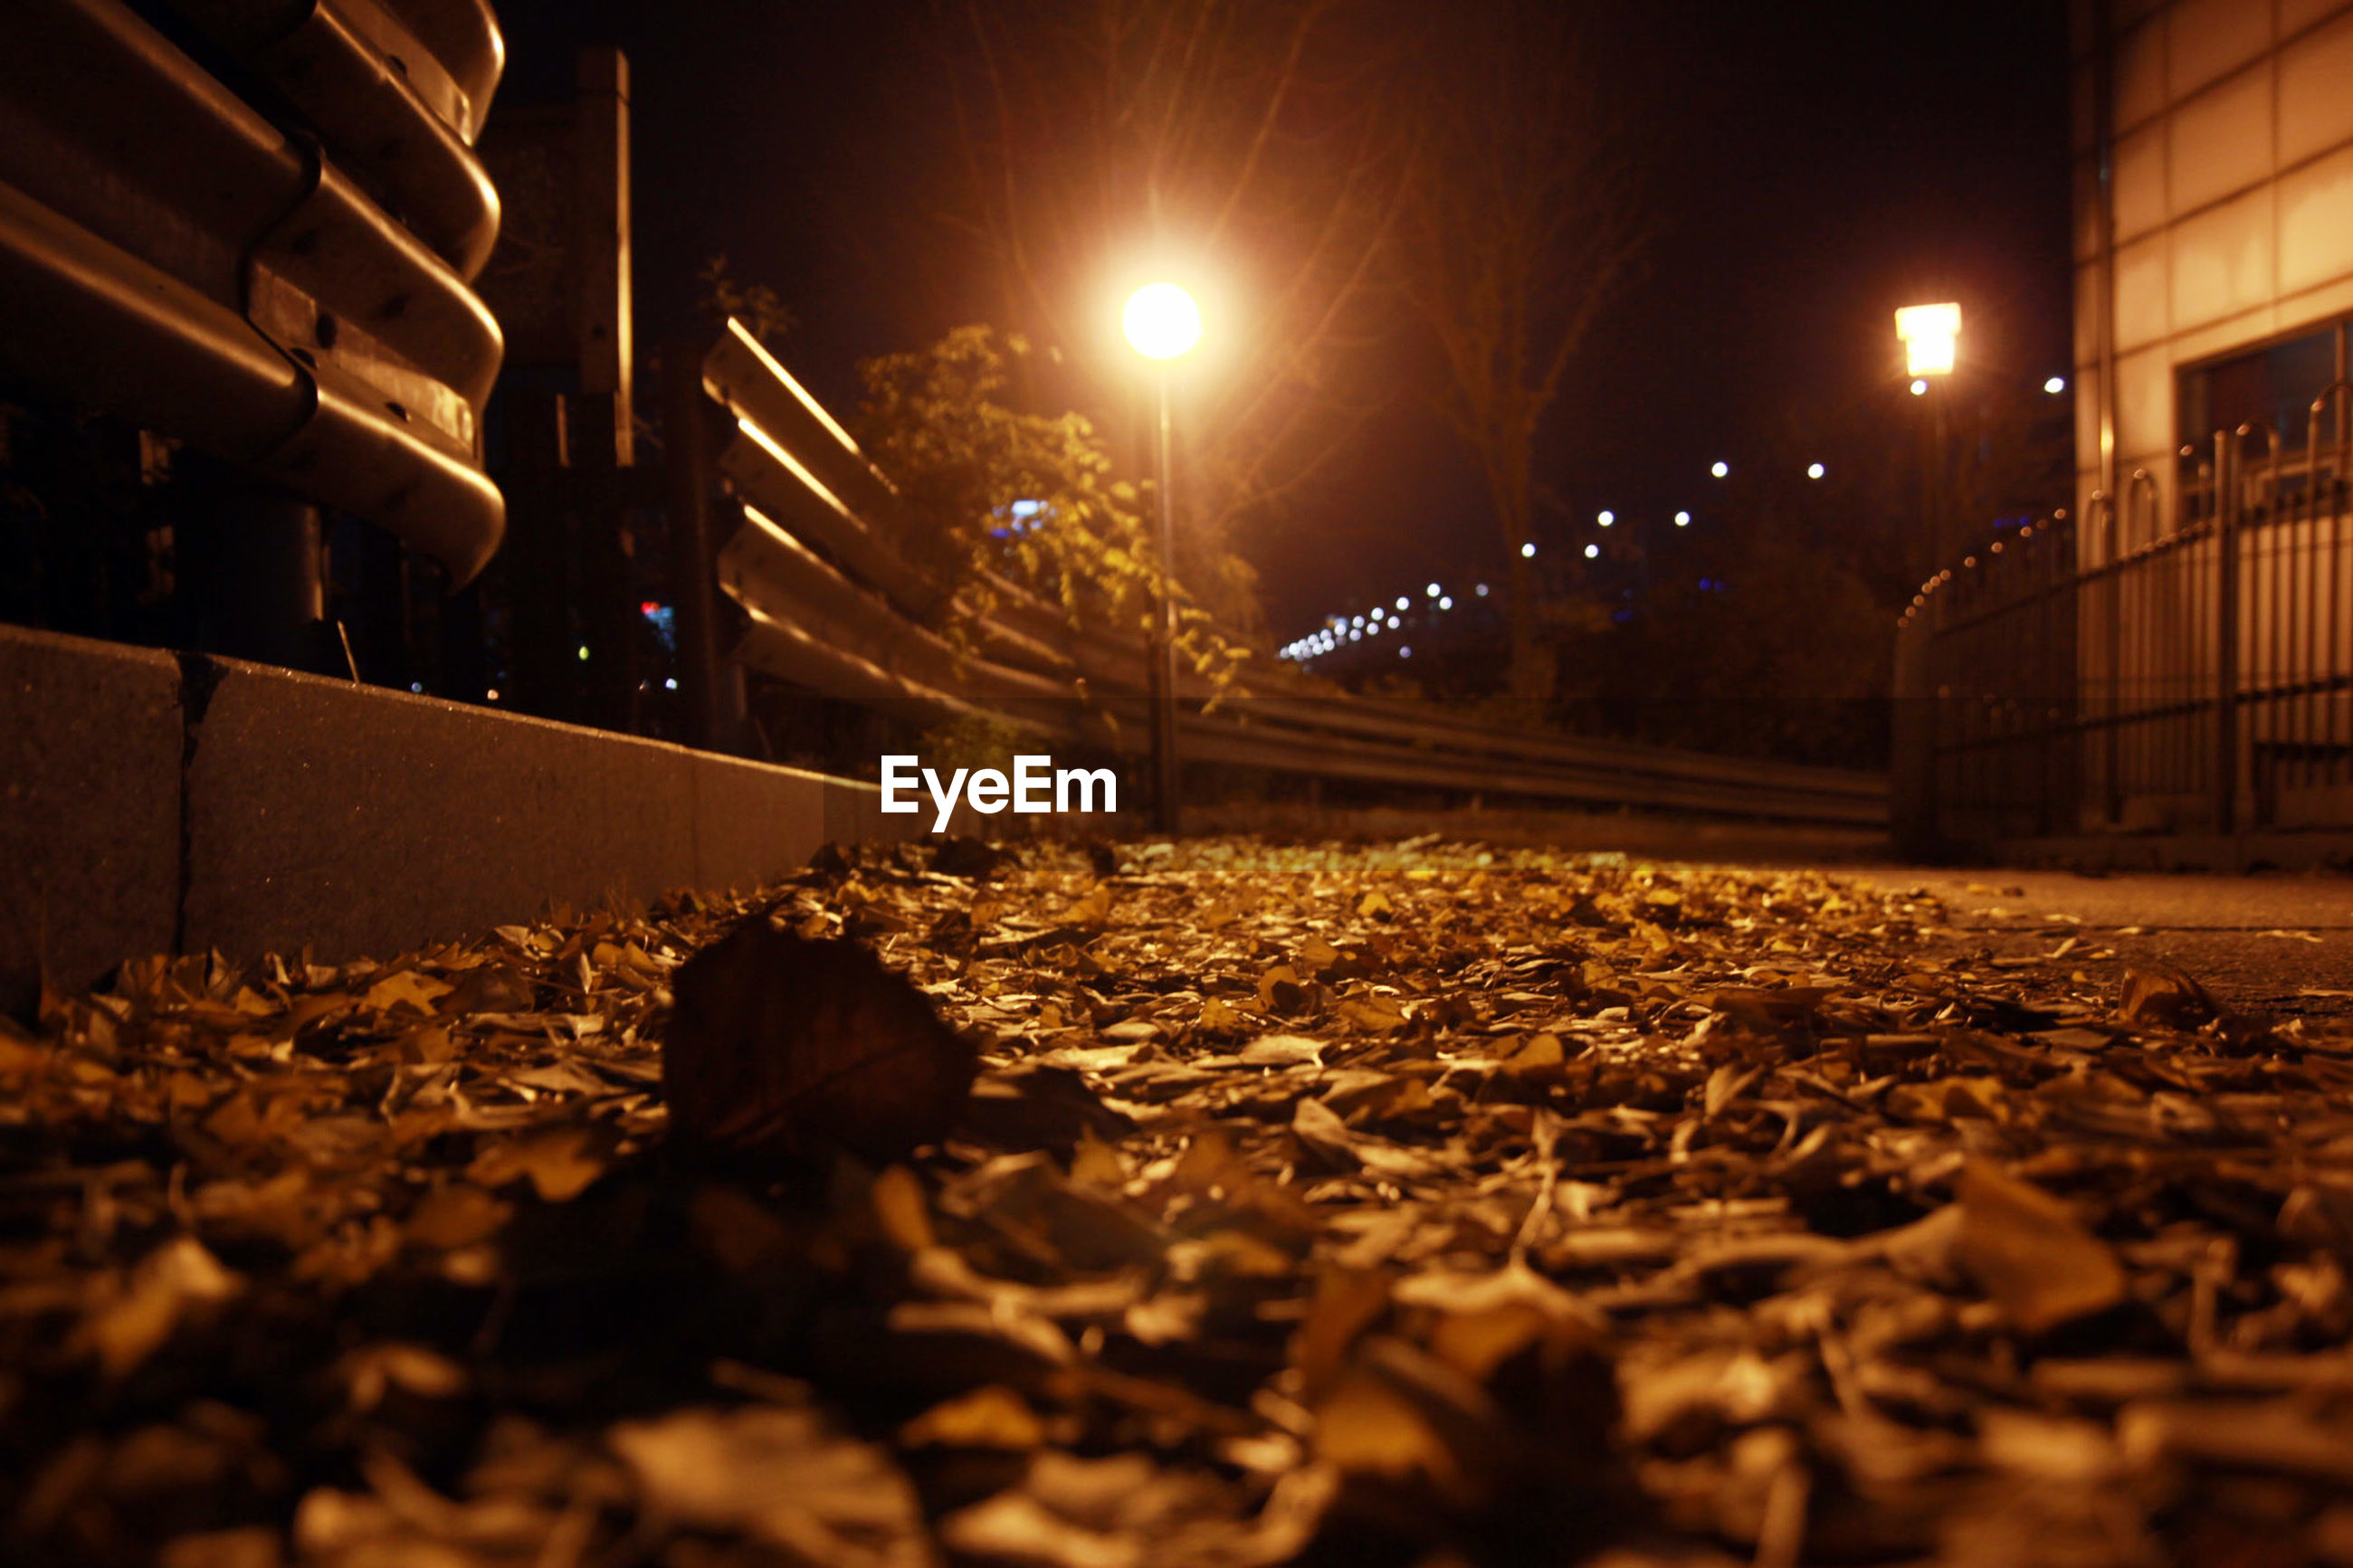 night, illuminated, surface level, railroad track, street light, transportation, the way forward, built structure, lighting equipment, architecture, diminishing perspective, rail transportation, building exterior, street, outdoors, vanishing point, city, connection, no people, selective focus